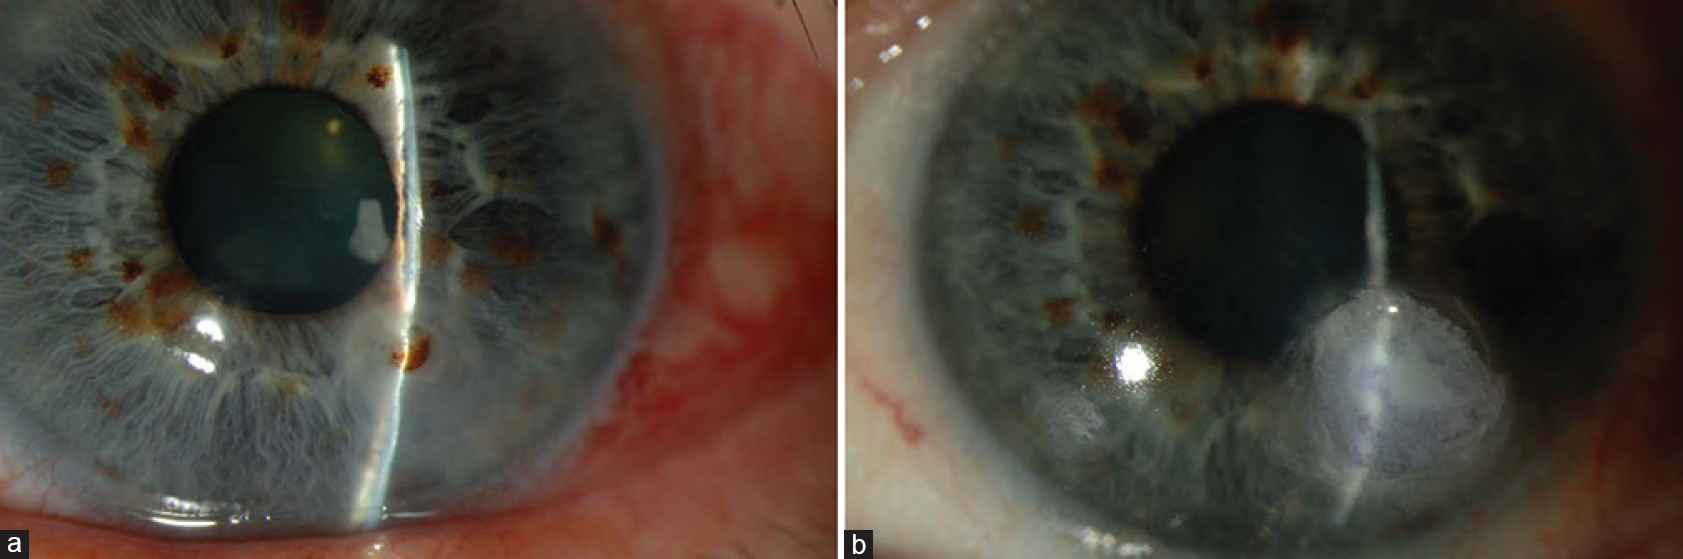 Figure 2: (a) Corneal perforation prior to application of Tenon's patch graft (b) Corneal perforation successfully sealed using a Tenon's patch graft, secured using glue